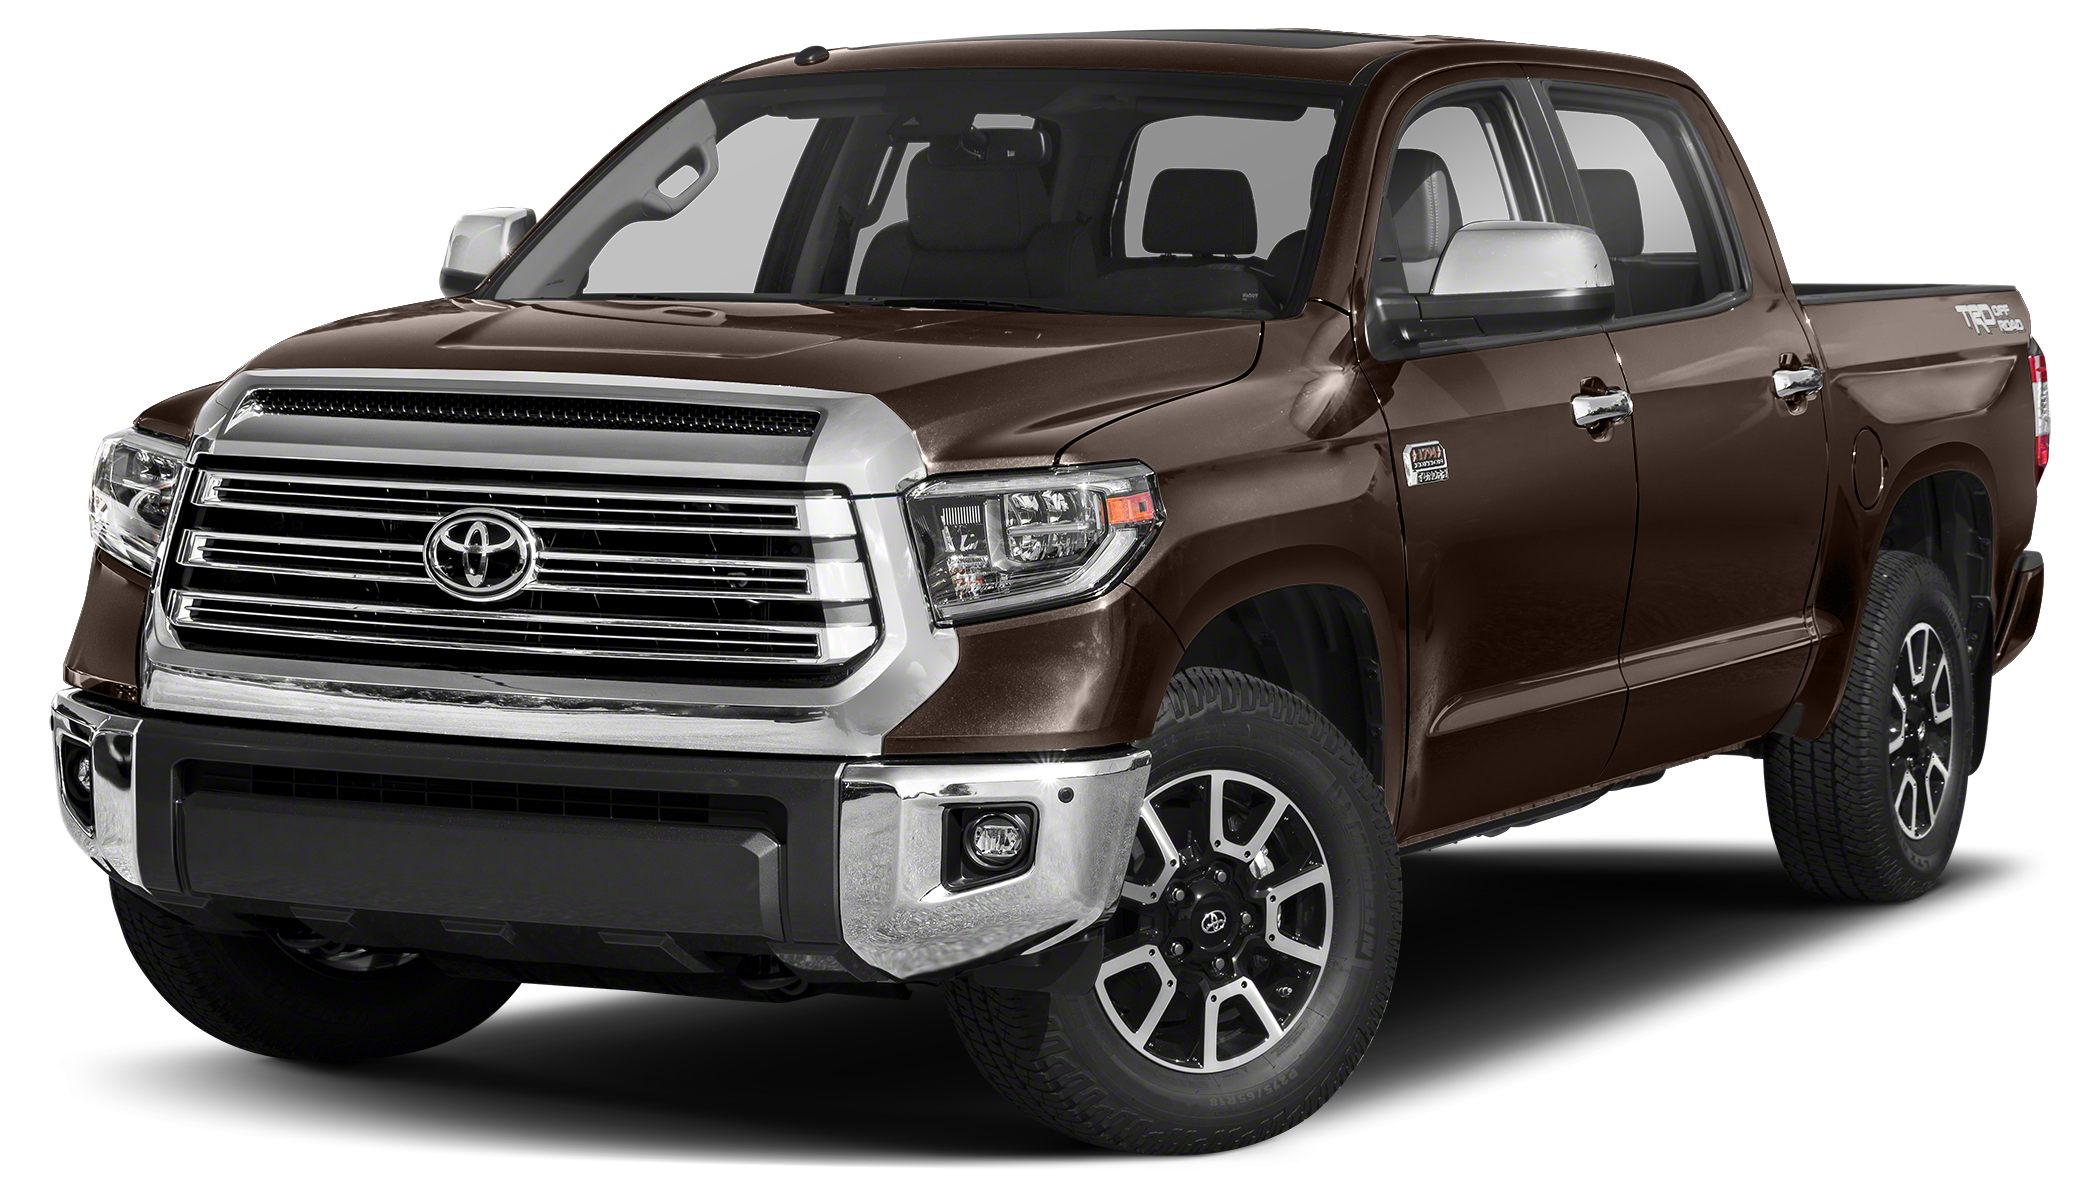 2018 Toyota Tundra 1794 Sunroof HeatedCooled Leather Seats Navigation Premium Sound System Tr